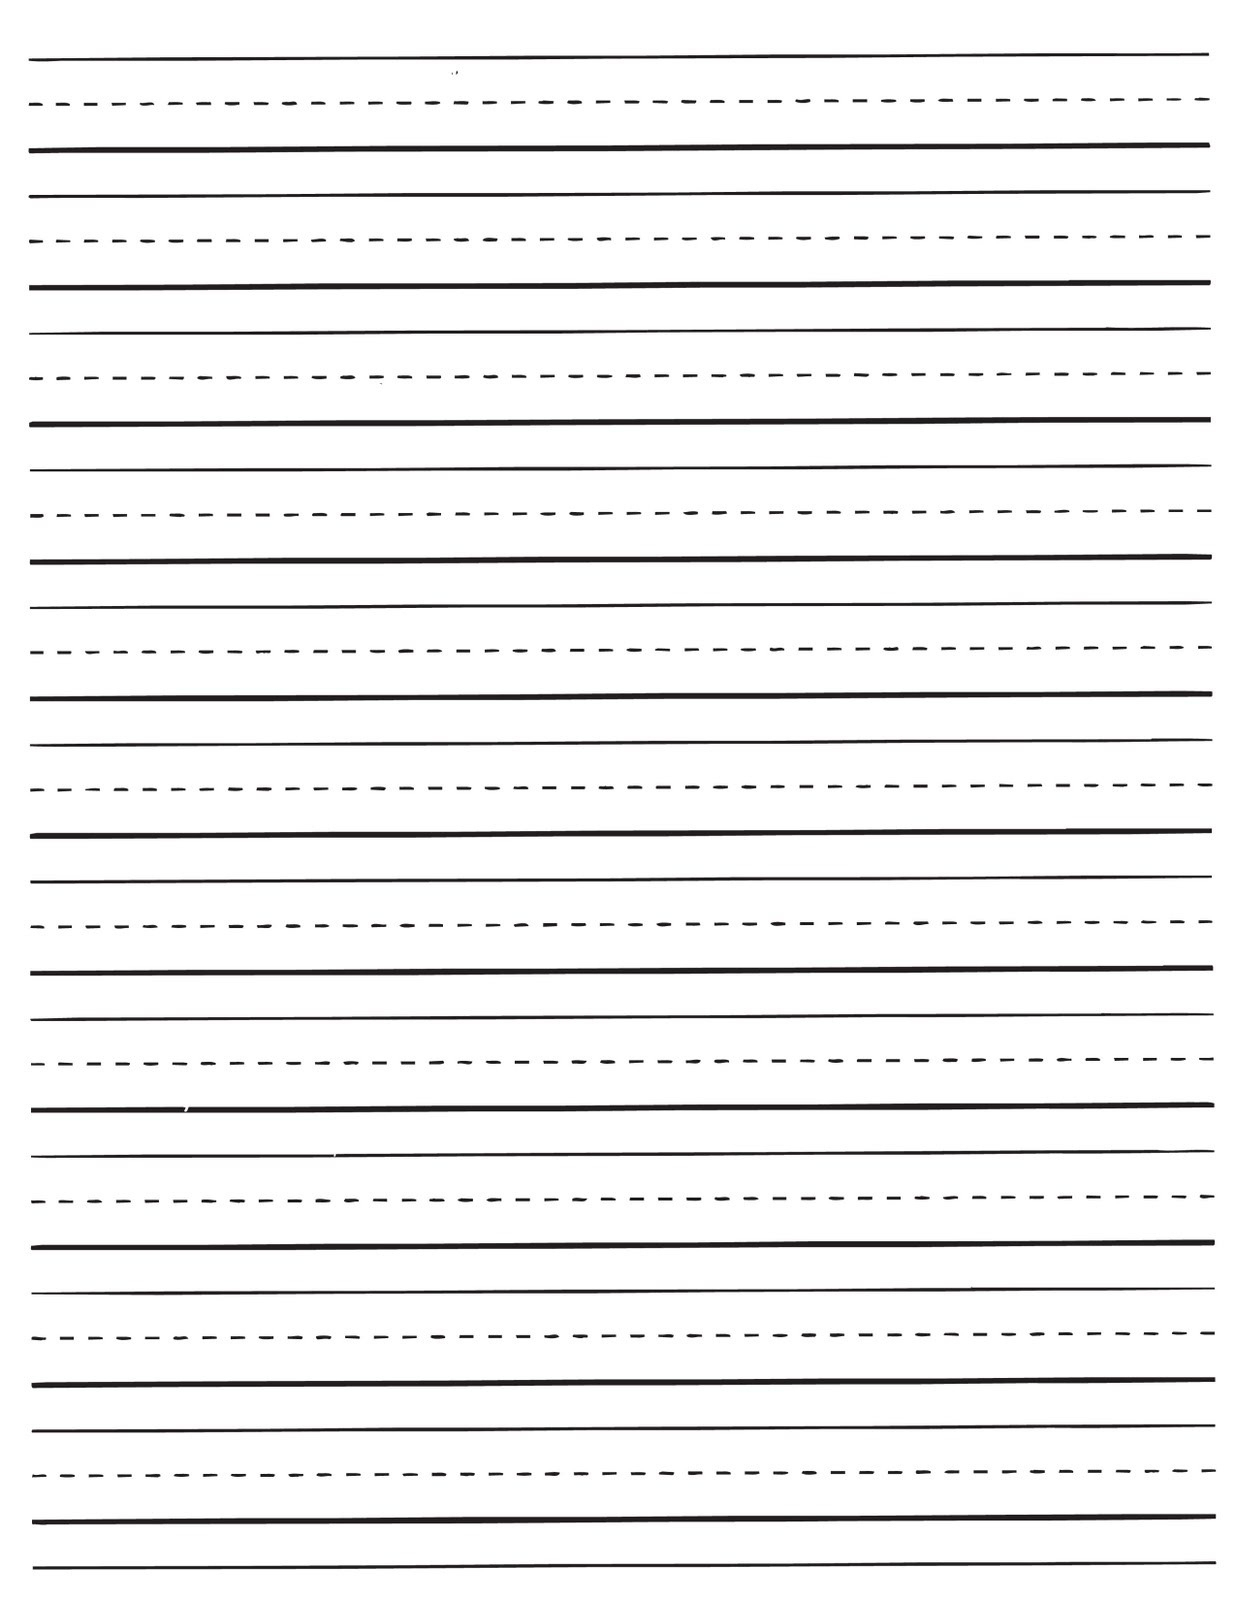 Free Printable Kids Stationery, Free Primary Lined Writing Paper - Free Printable Lined Writing Paper